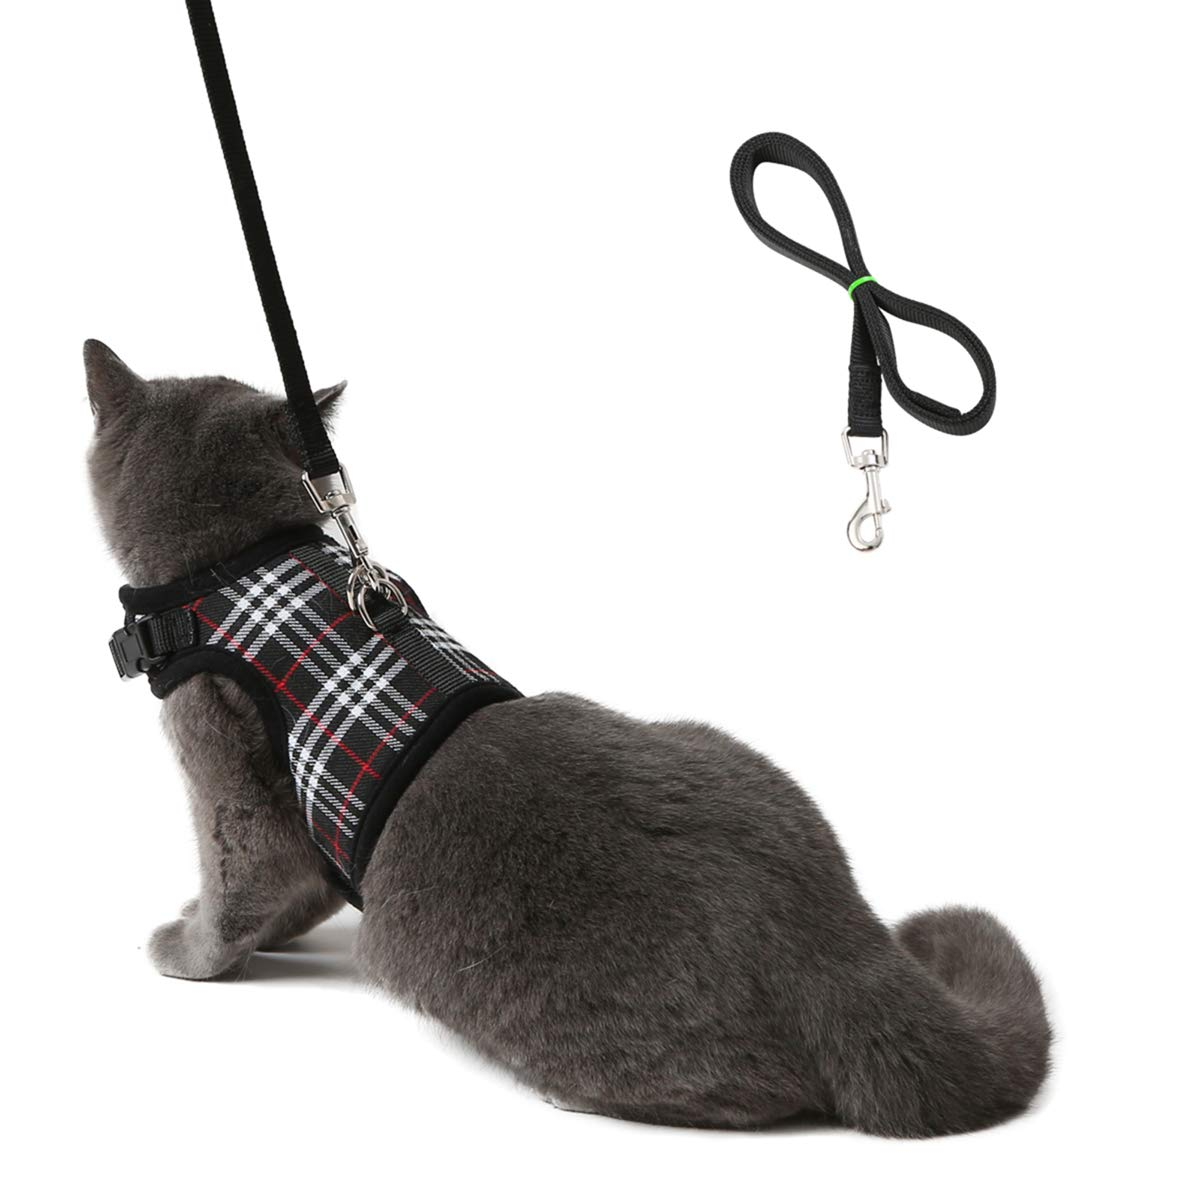 WZPB Cat Harness and Leash Set- Adjustable Soft Mesh Cat Harness for Walking Escape Proof